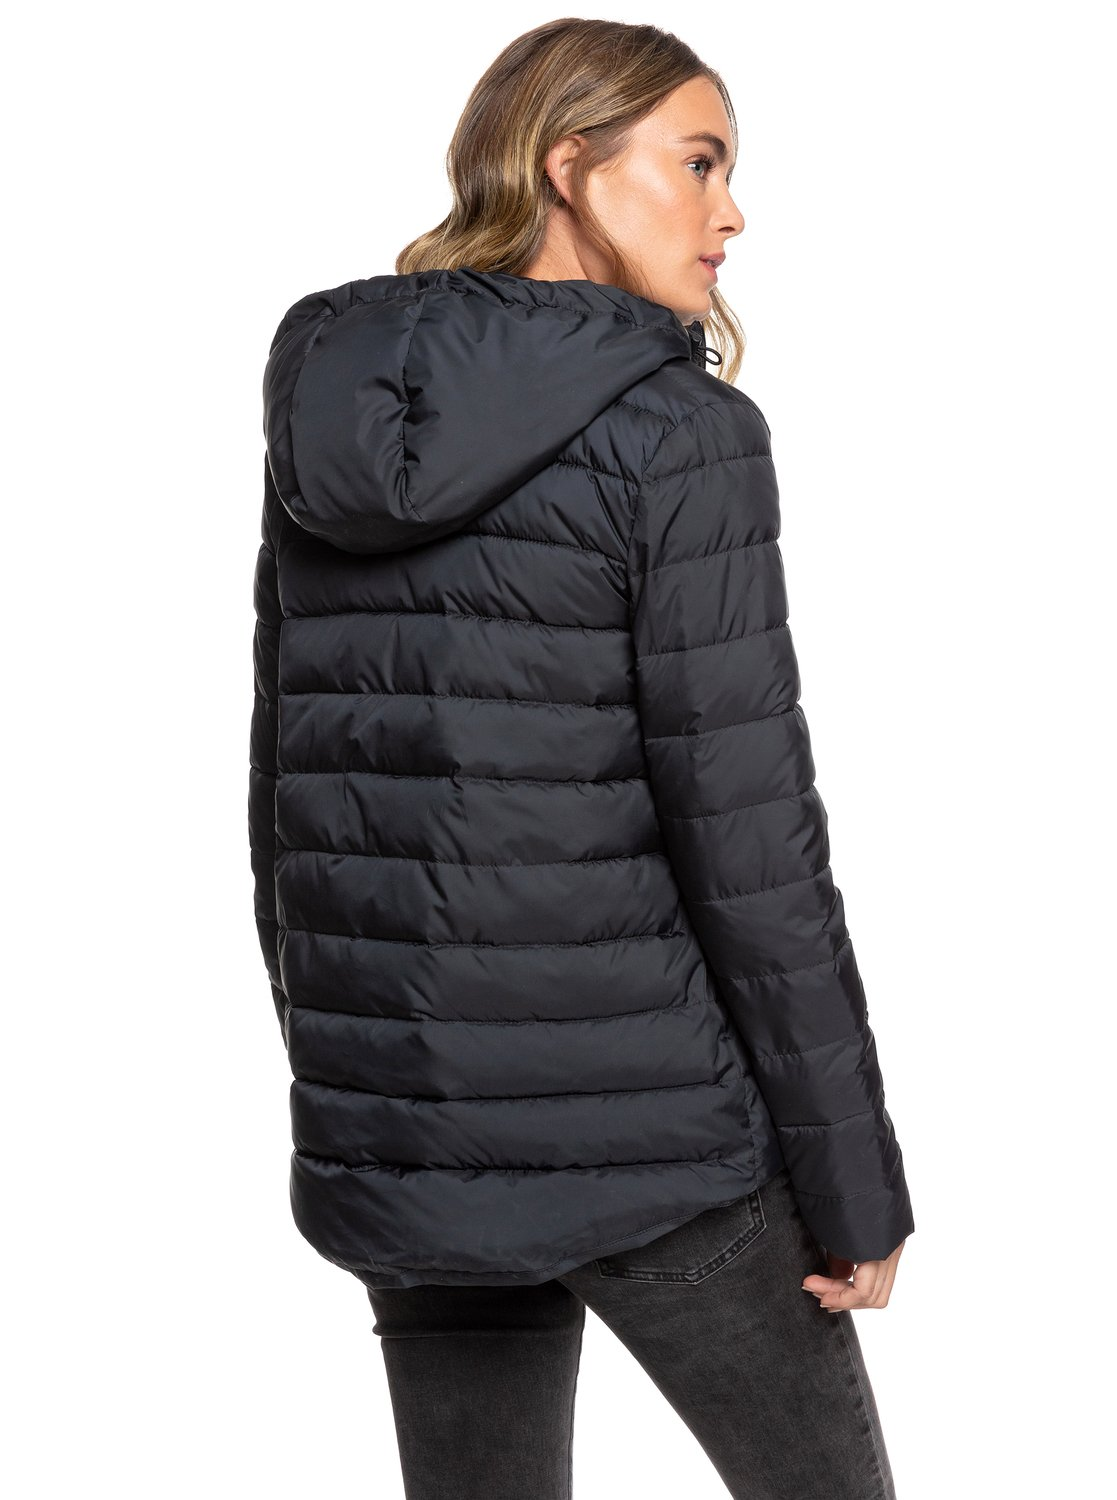 ea3df4a9b675 Roxy™ Rock Peak - Water-Repellent Hooded Padded Jacket - Women - L - Black